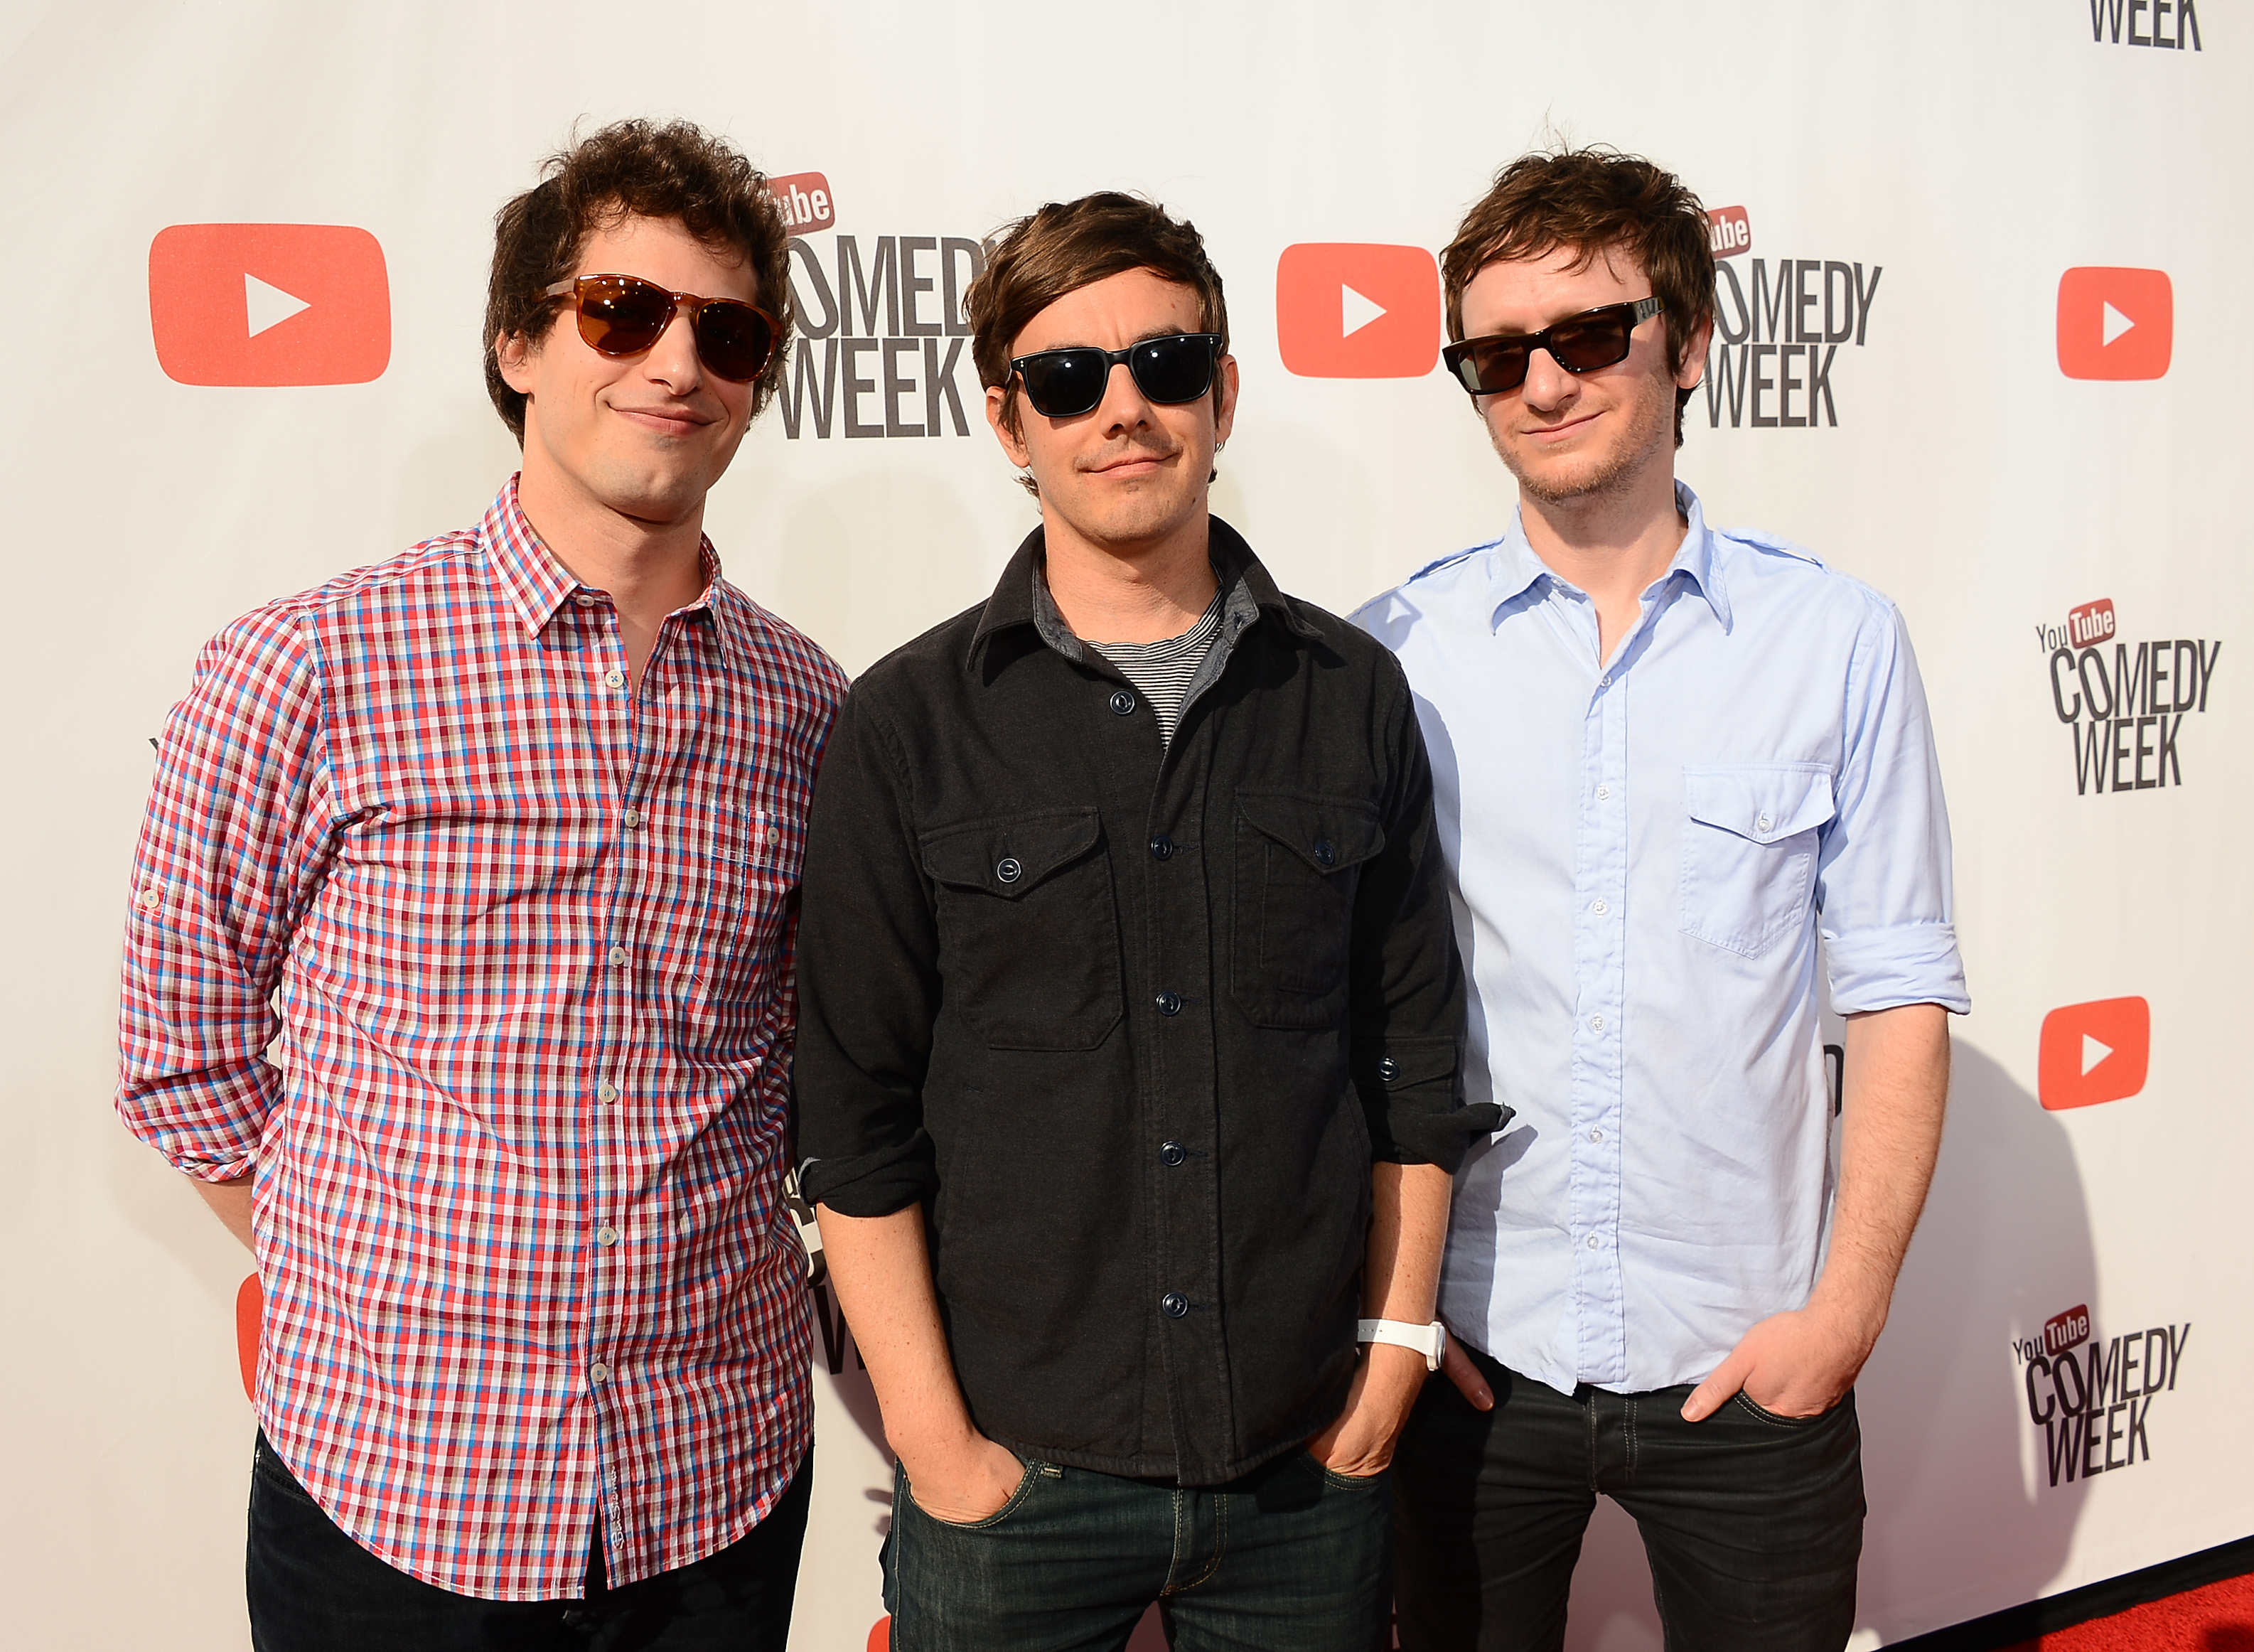 Actors/comedians Andy Samberg, Jorma Taccone and Akiva Schaffer of The Lonely Island attend  The Big Live Comedy Show  presented by YouTube Comedy Week held at Culver Studios in Culver City, Calif. on May 19, 2013.